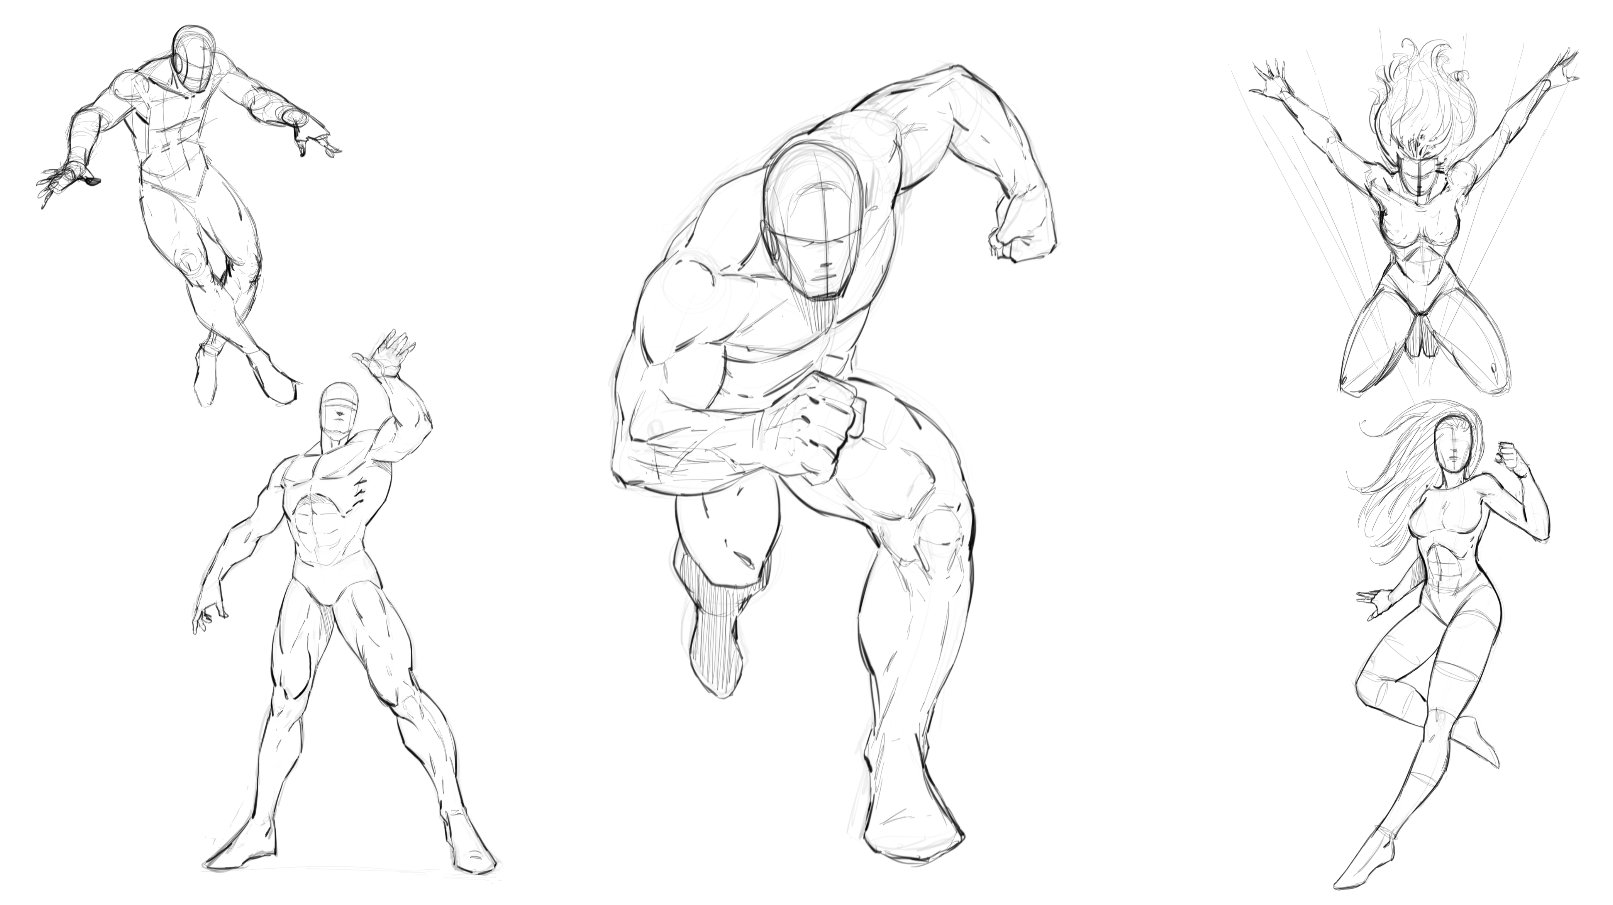 Learn the Basics for Improving Your Figure Drawings | Robert